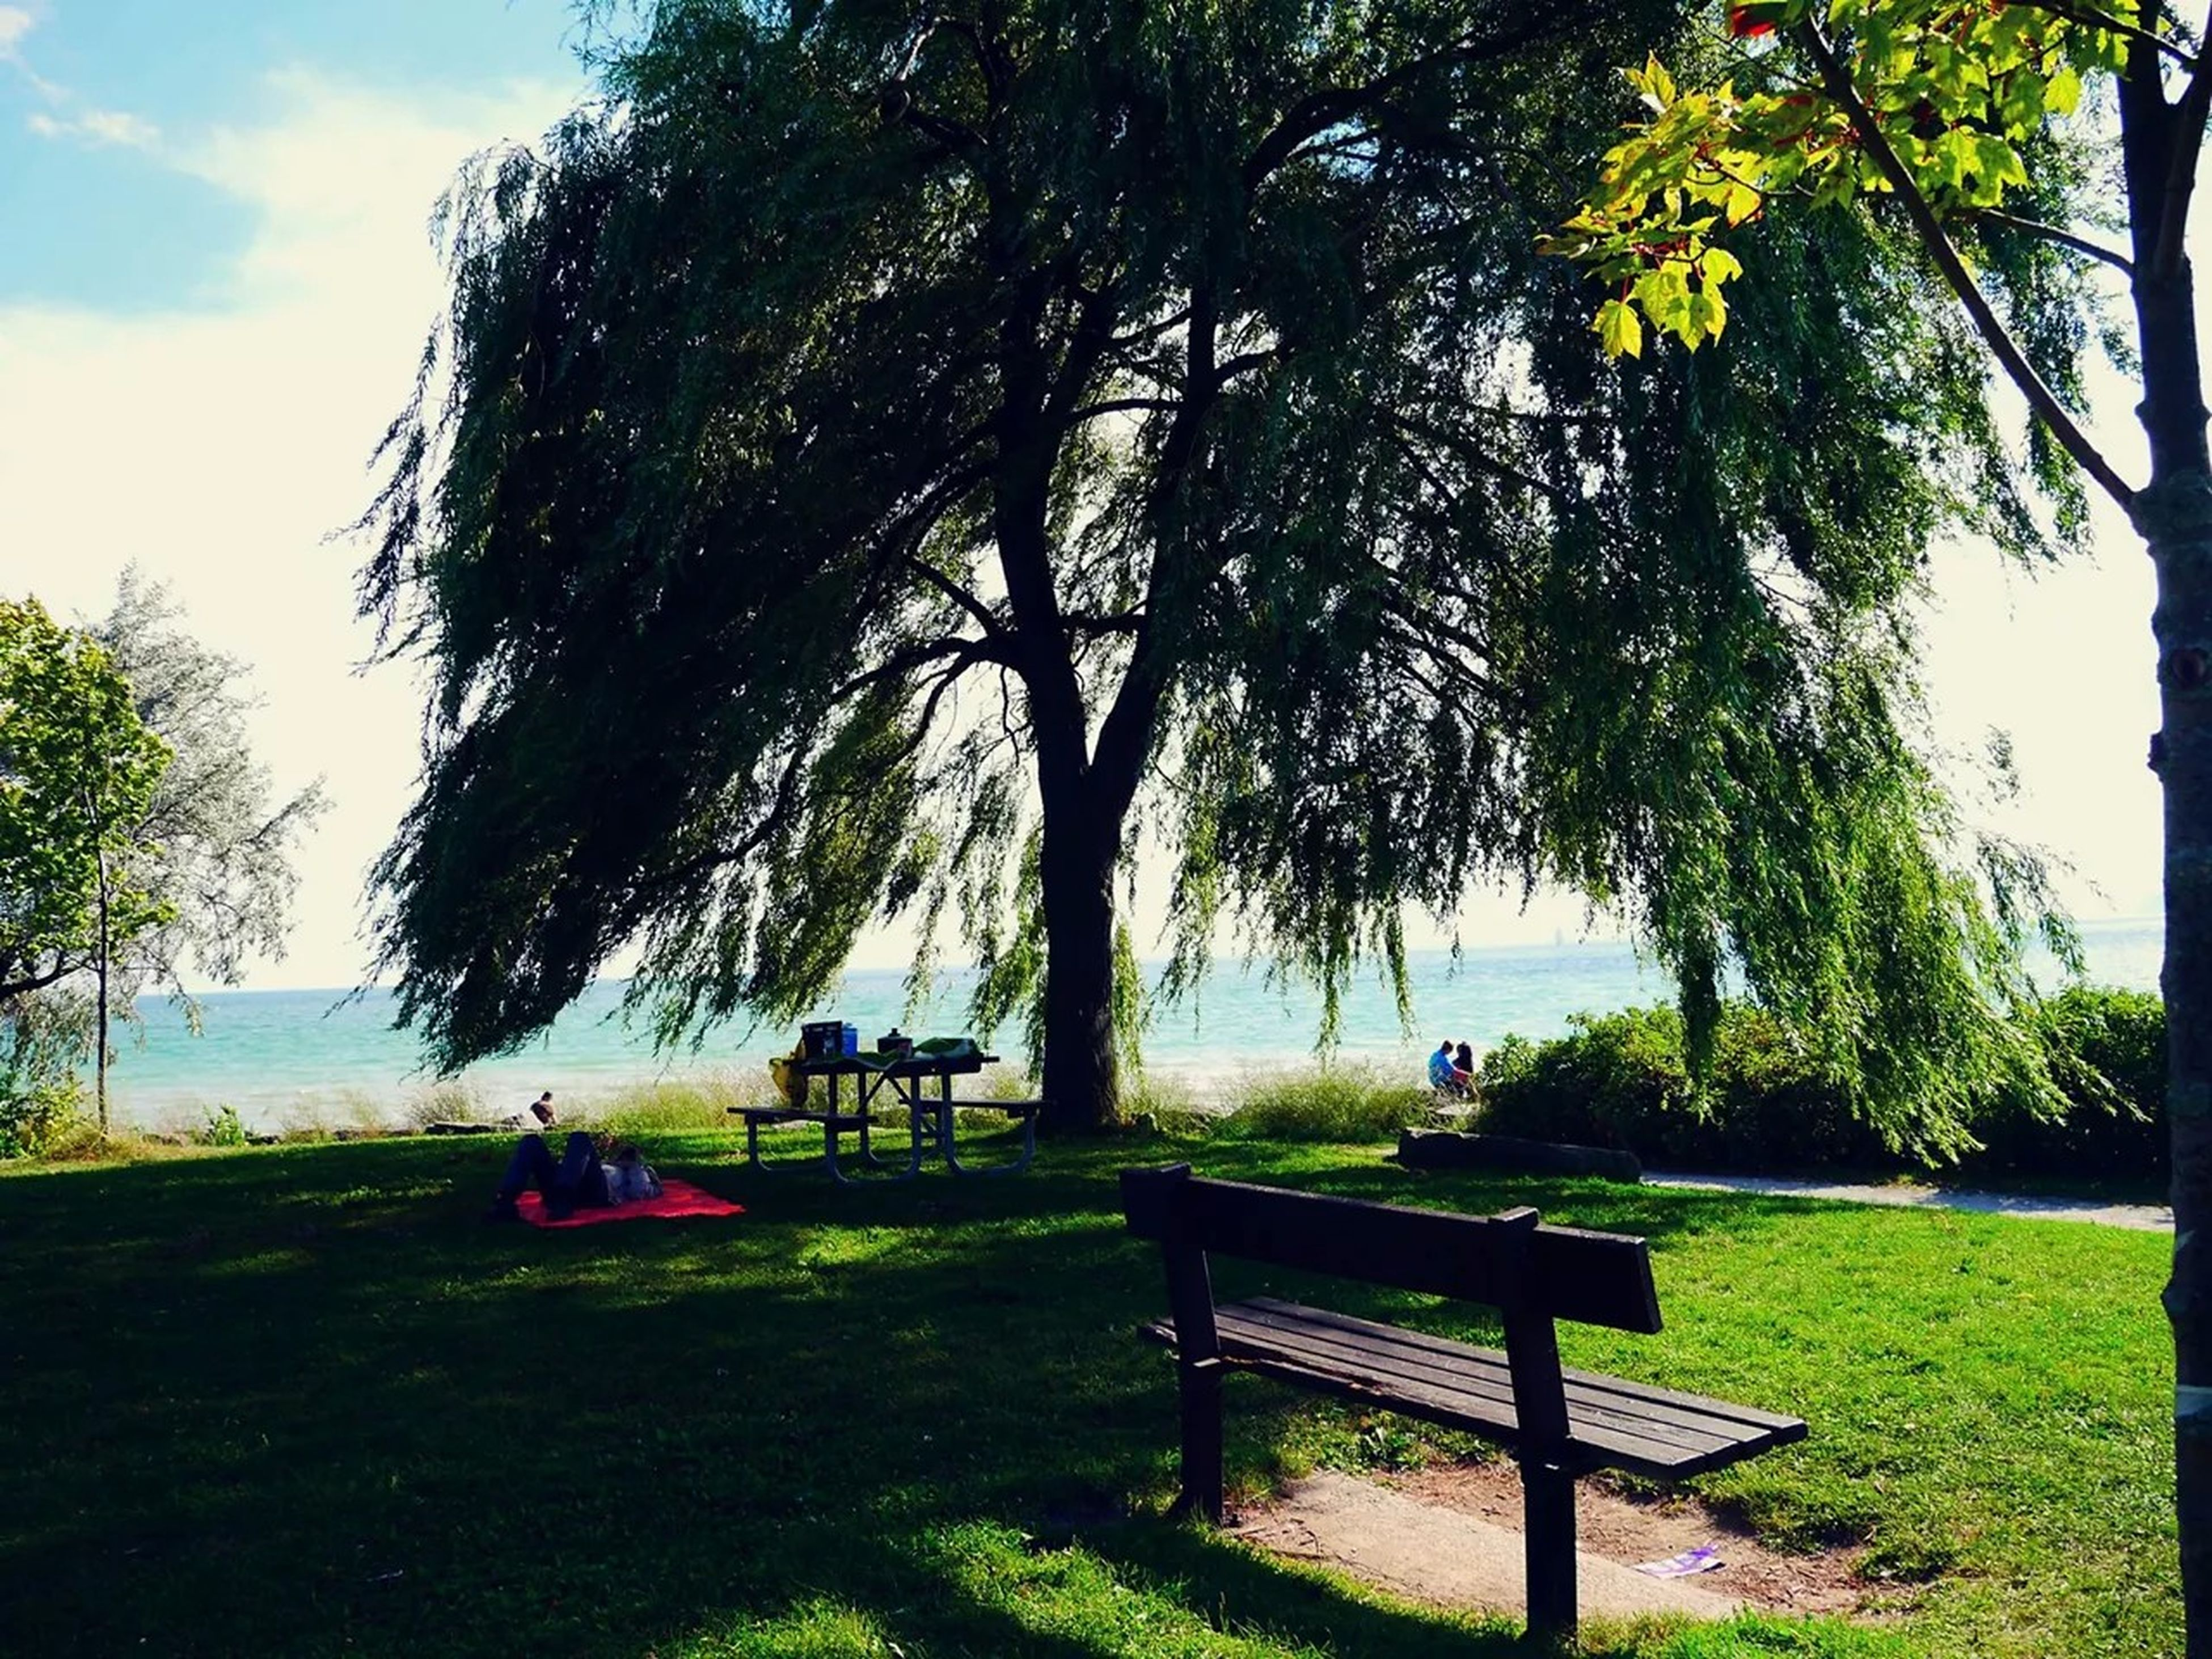 tree, bench, grass, relaxation, leisure activity, sitting, tranquility, park - man made space, tranquil scene, person, lifestyles, park bench, nature, men, scenics, sky, water, beauty in nature, chair